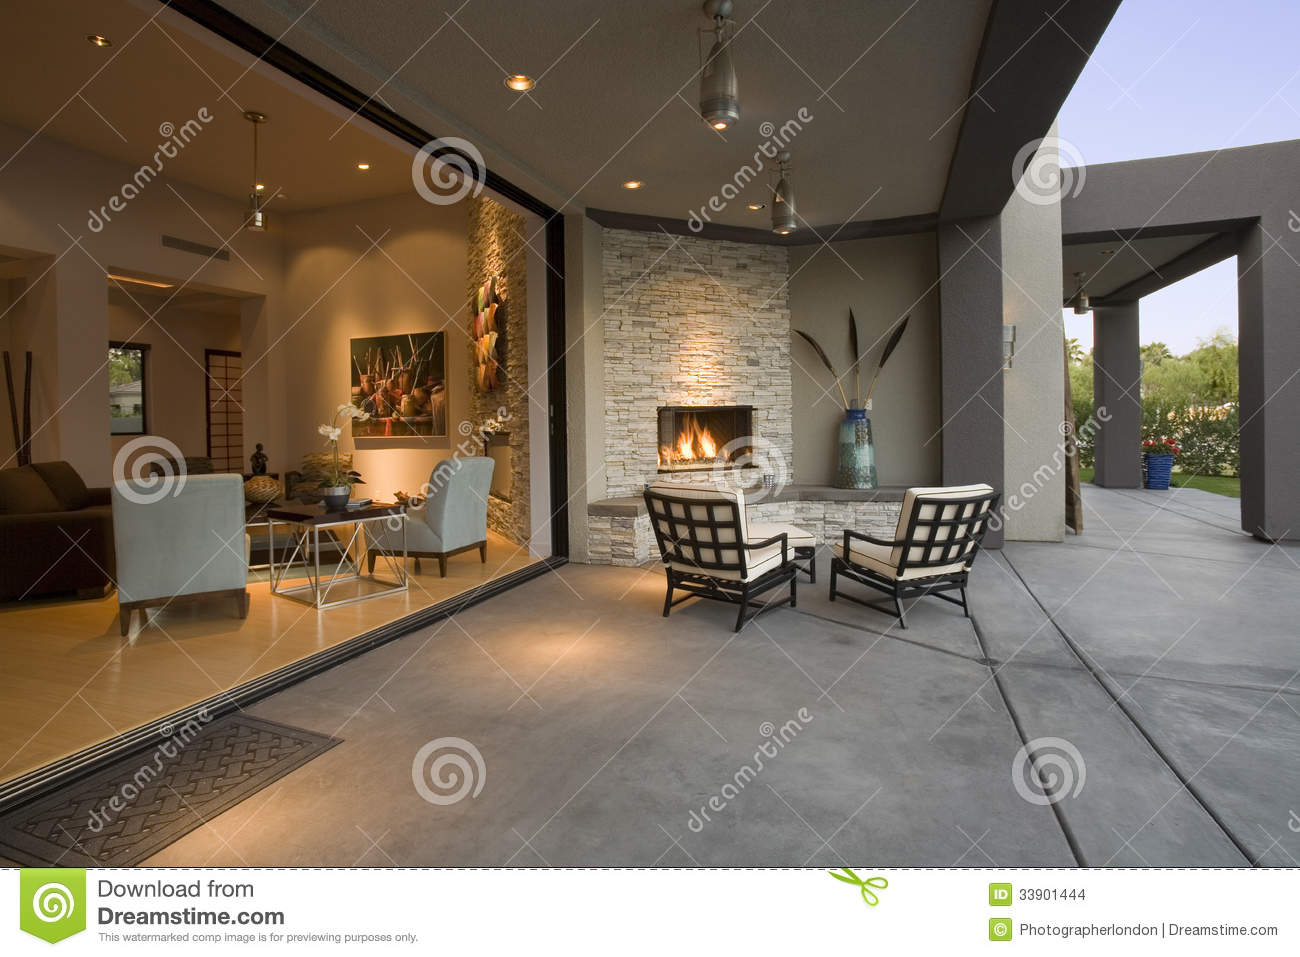 Download Chairs By Fireplace In Patio Stock Photo - Image of home, comfortable: 33901444